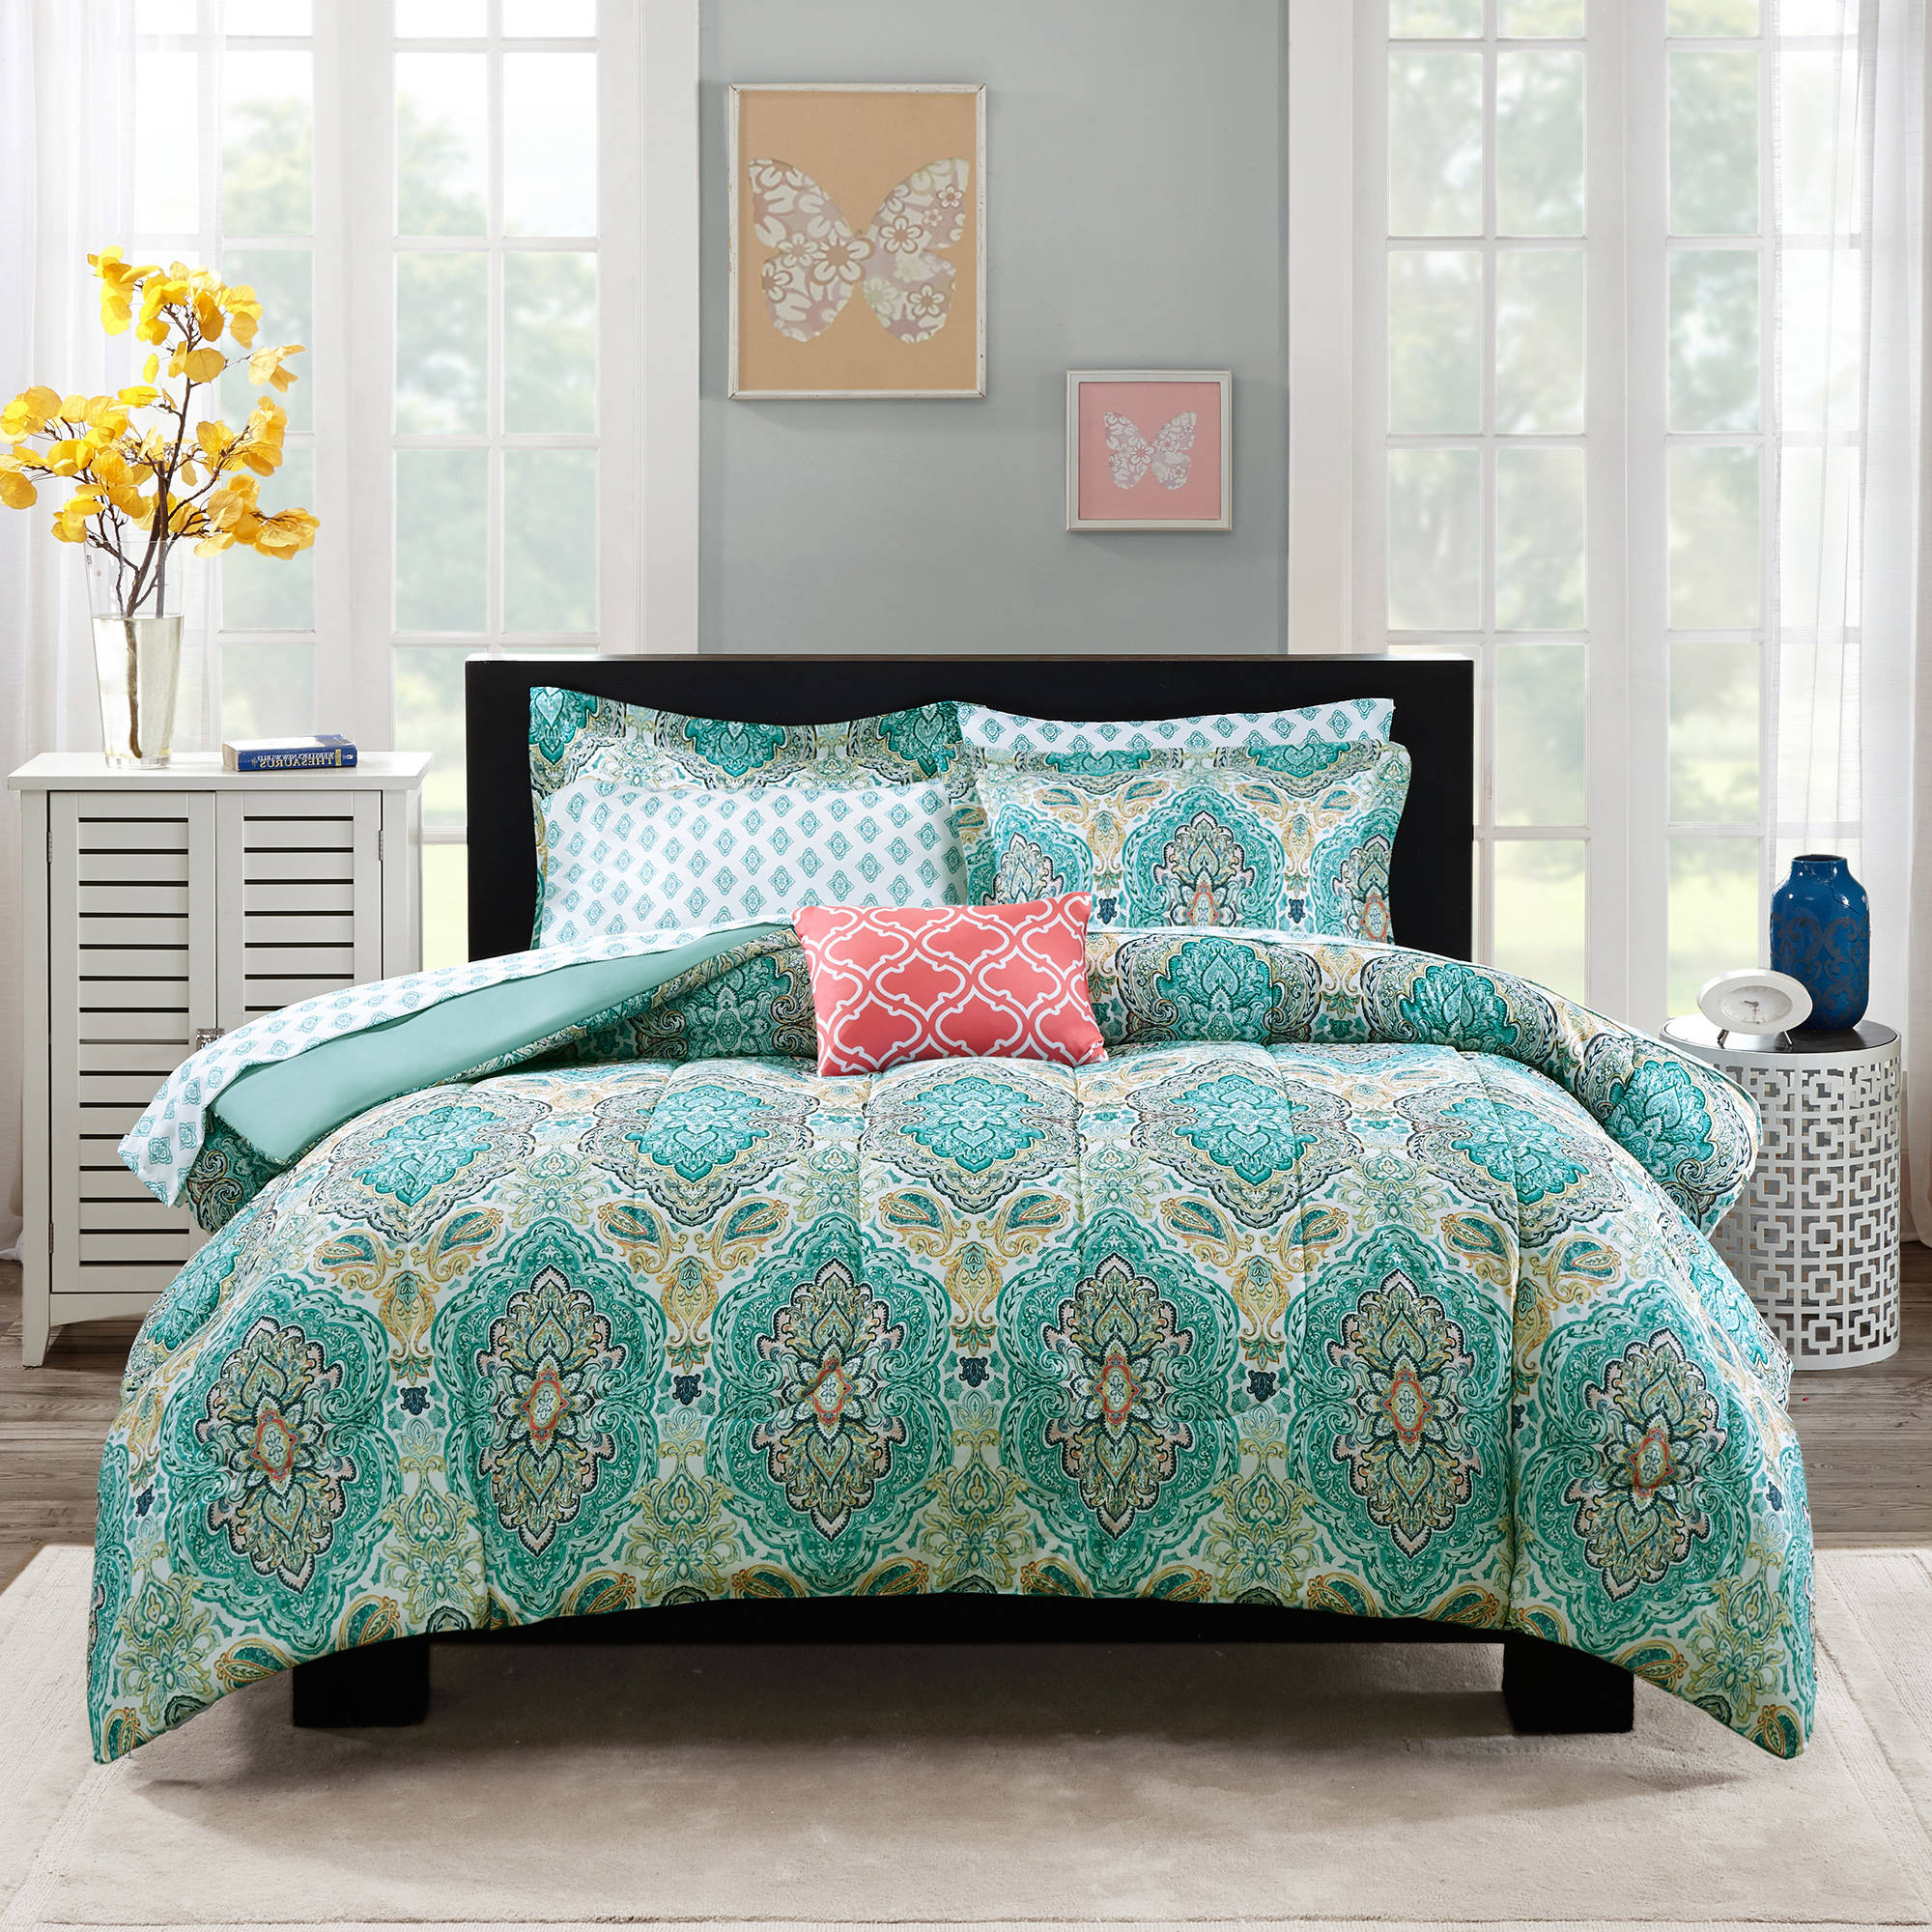 Mainstays Monique Paisley Coordinated Bedding Set